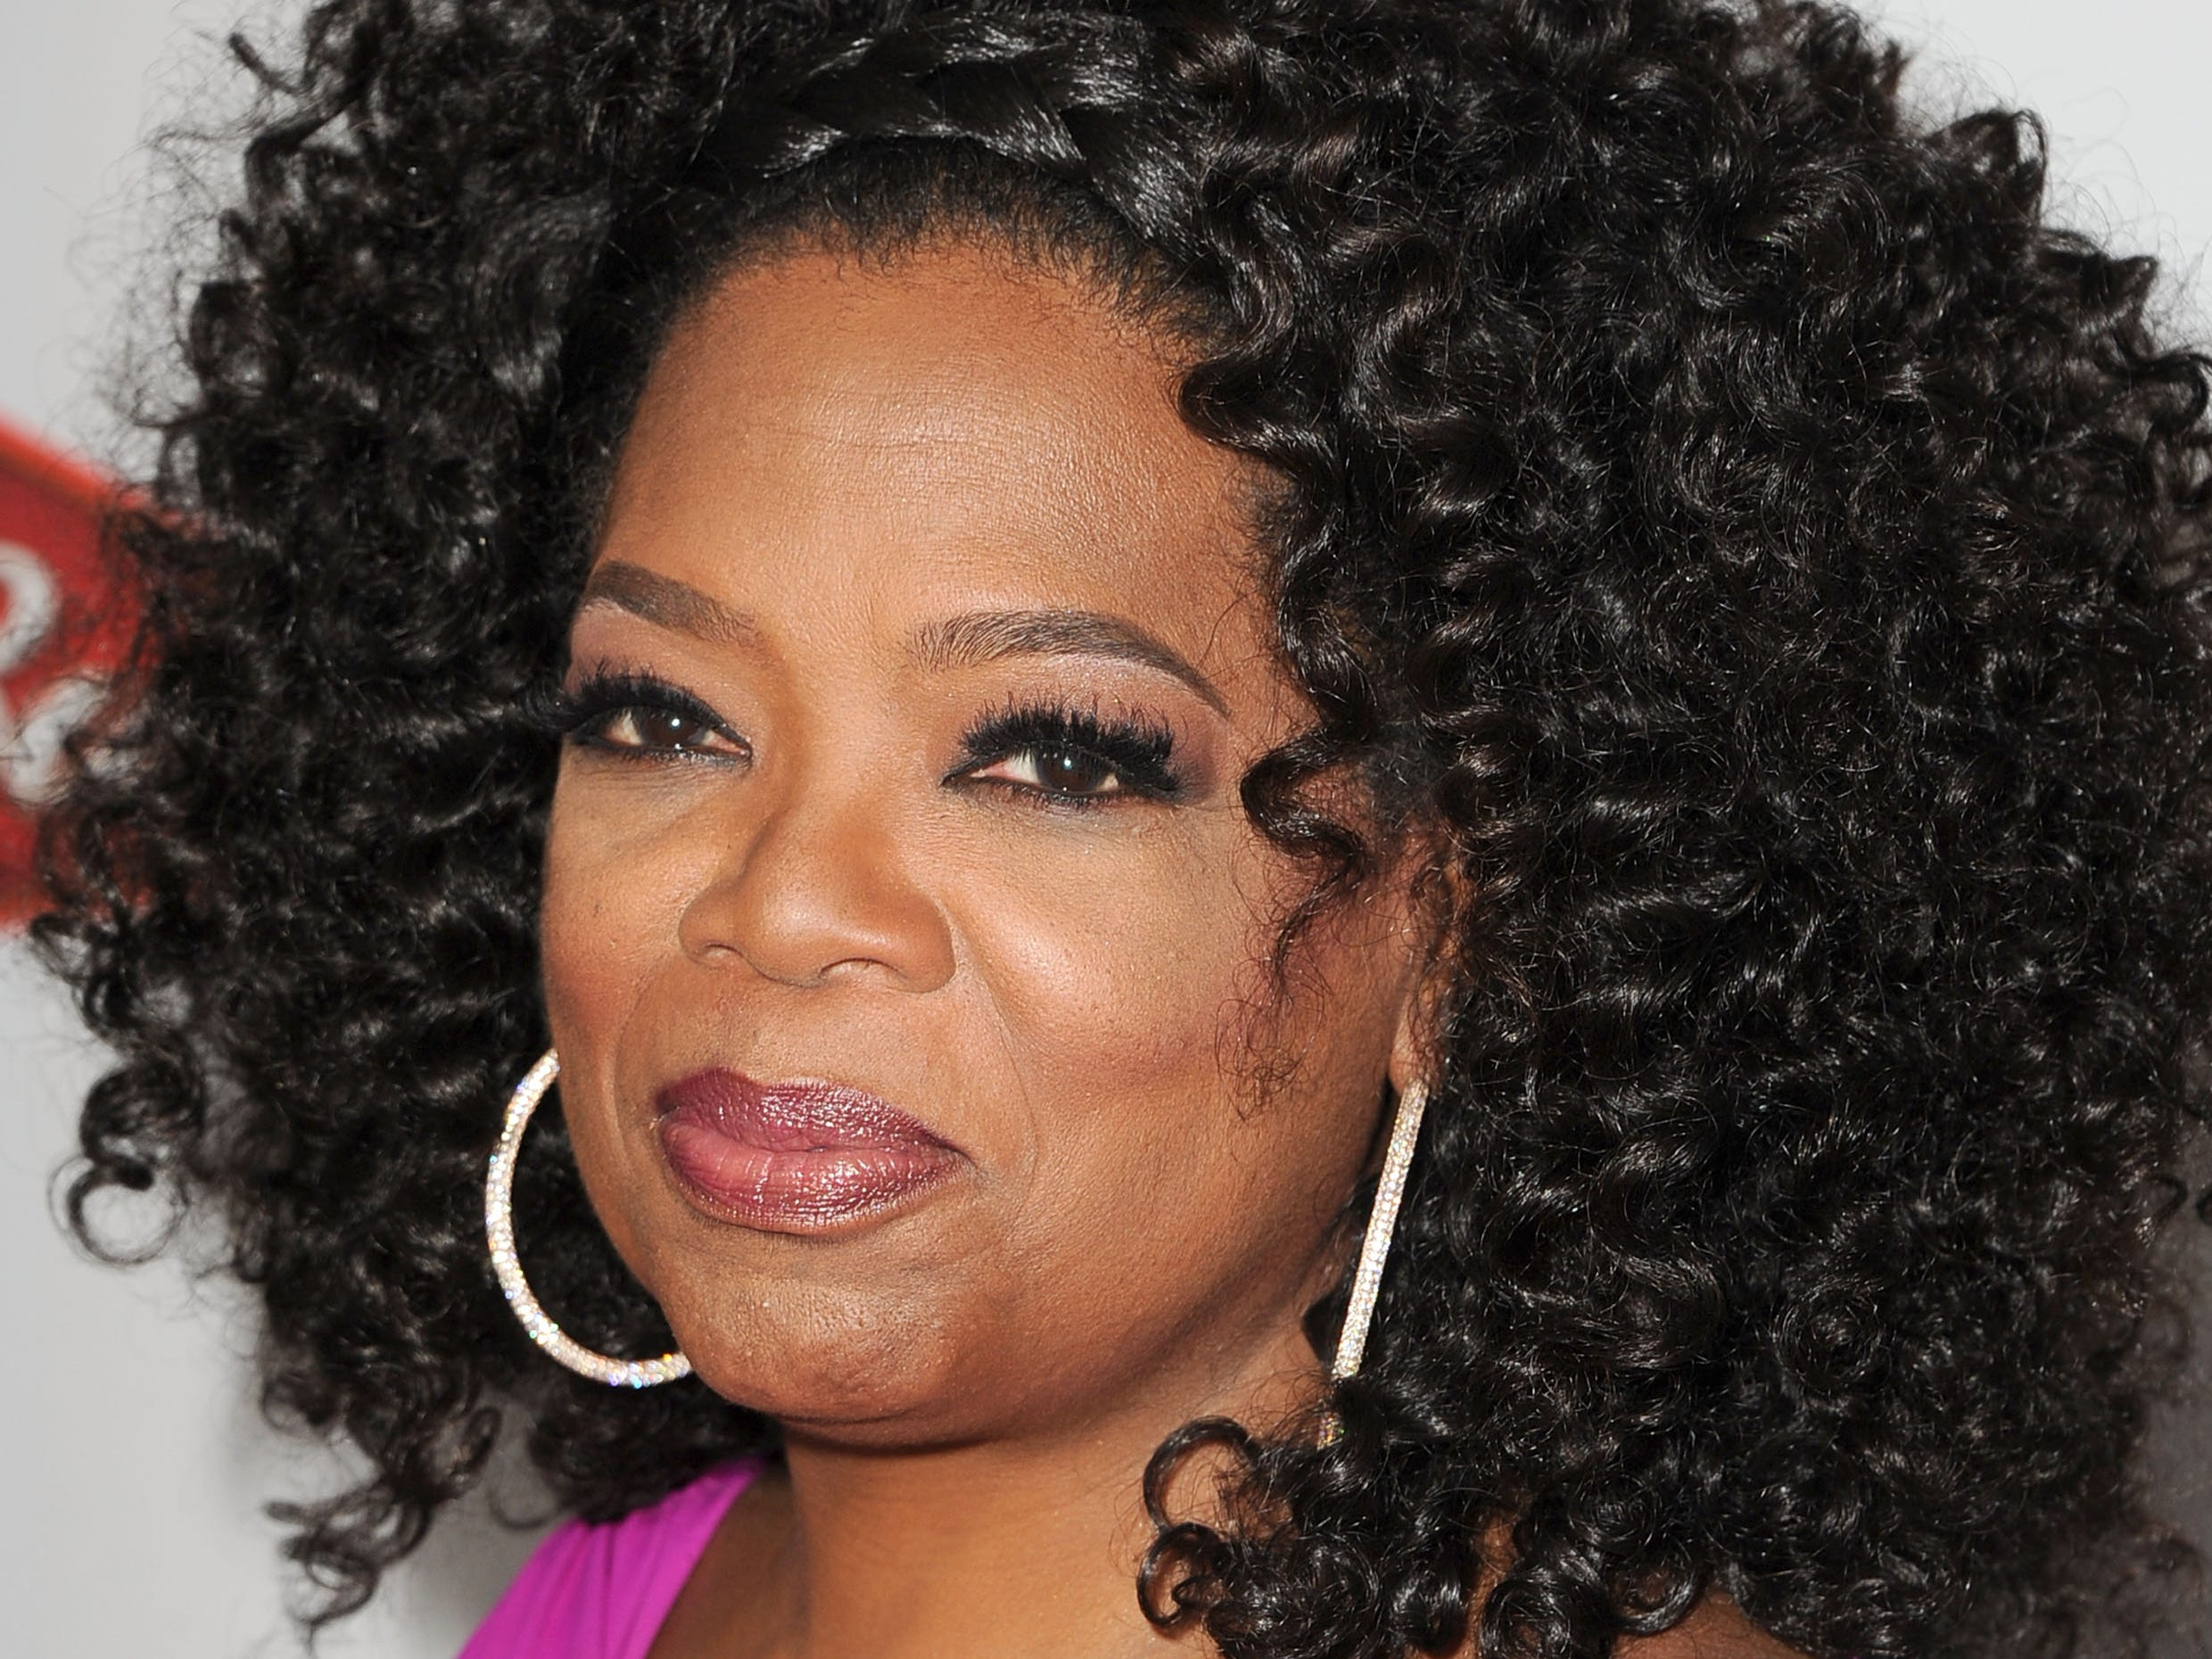 Oprah Winfrey is clearly comfortable in front of the camera, whether it's for TV or film. The showbiz veteran has successfully tried her hand at acting, securing an Oscar nomination and millions of box office dollars along the way. Most recently, she's grabbing headlines for her starring role in the upcoming 'Lee Daniels' The Butler.' USA TODAY's Yohana Desta takes a look at some highlights from Oprah's acting career.